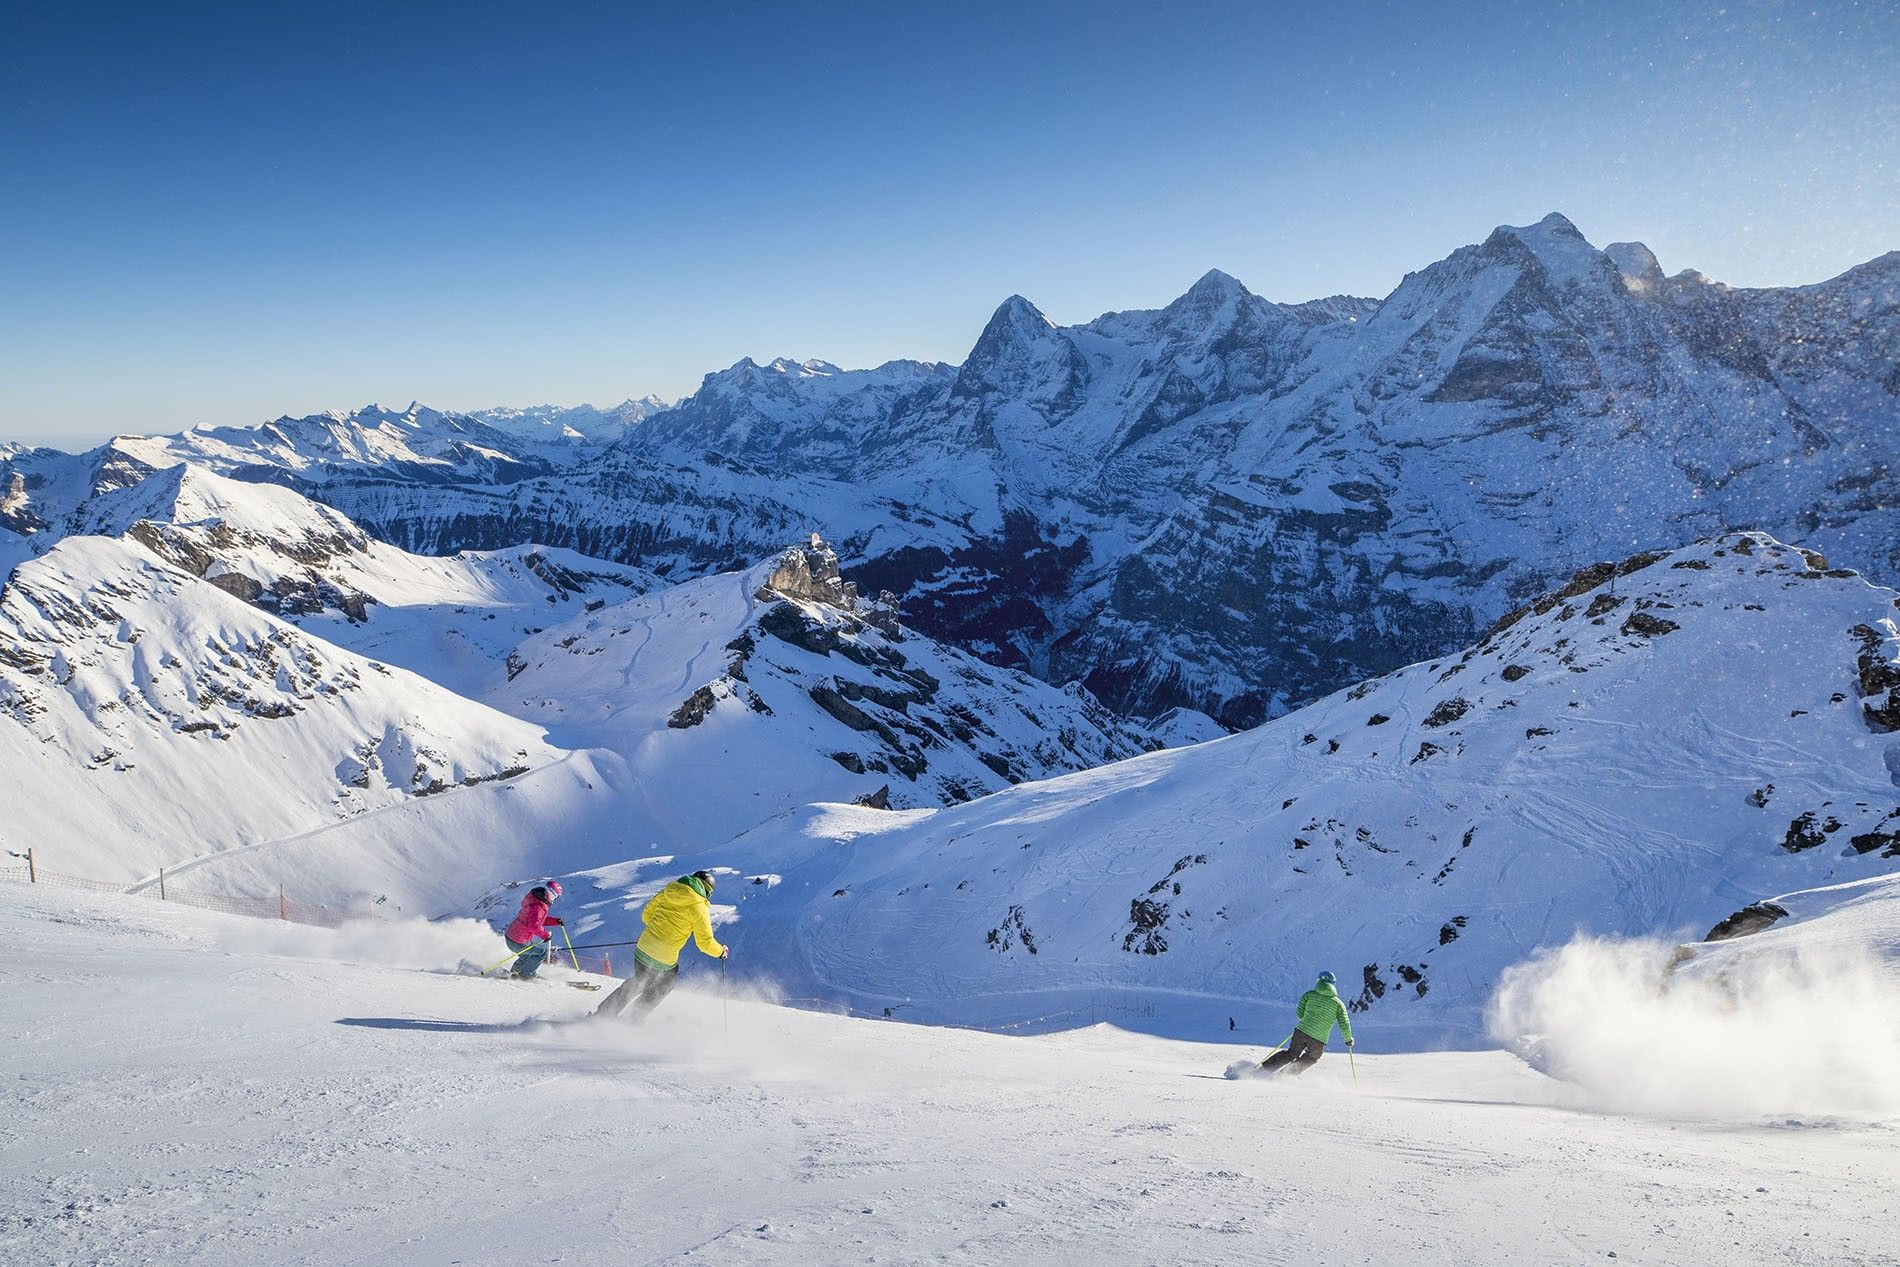 The ski resort of Mürren, one of the best-known in the Bernese Alps, is a must-visit for any skier. It has slopes for every ability, from beginner and intermediate skiing to off-piste, heli-skiing and ski touring options.